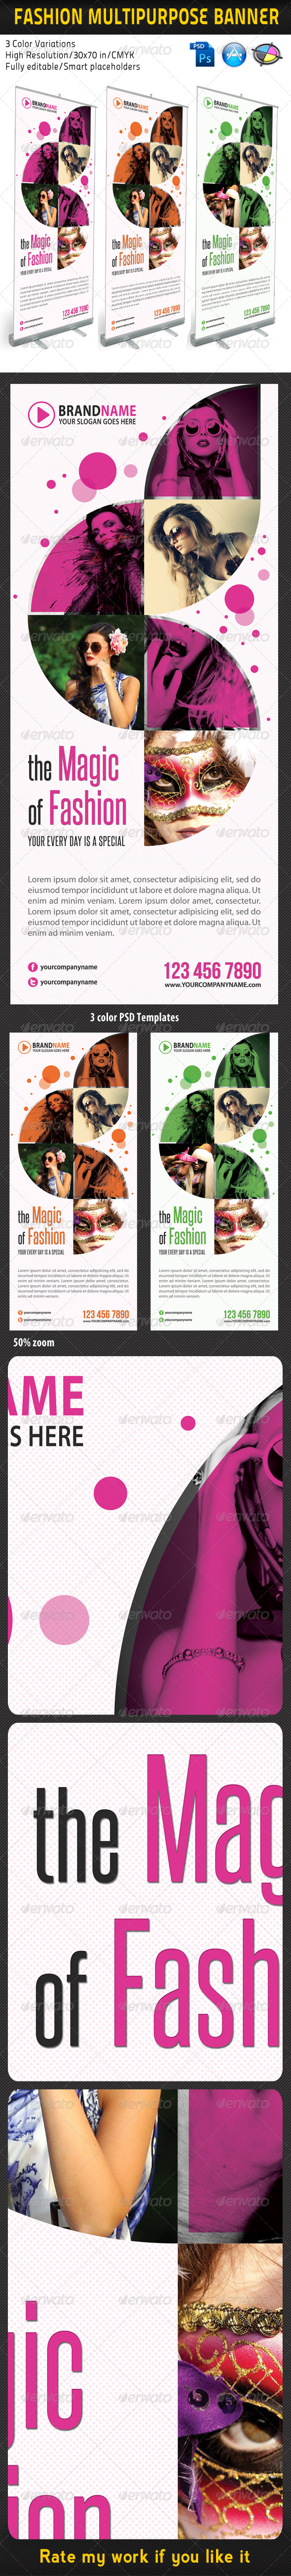 GraphicRiver Fashion Multipurpose Banner Template 05 5850343